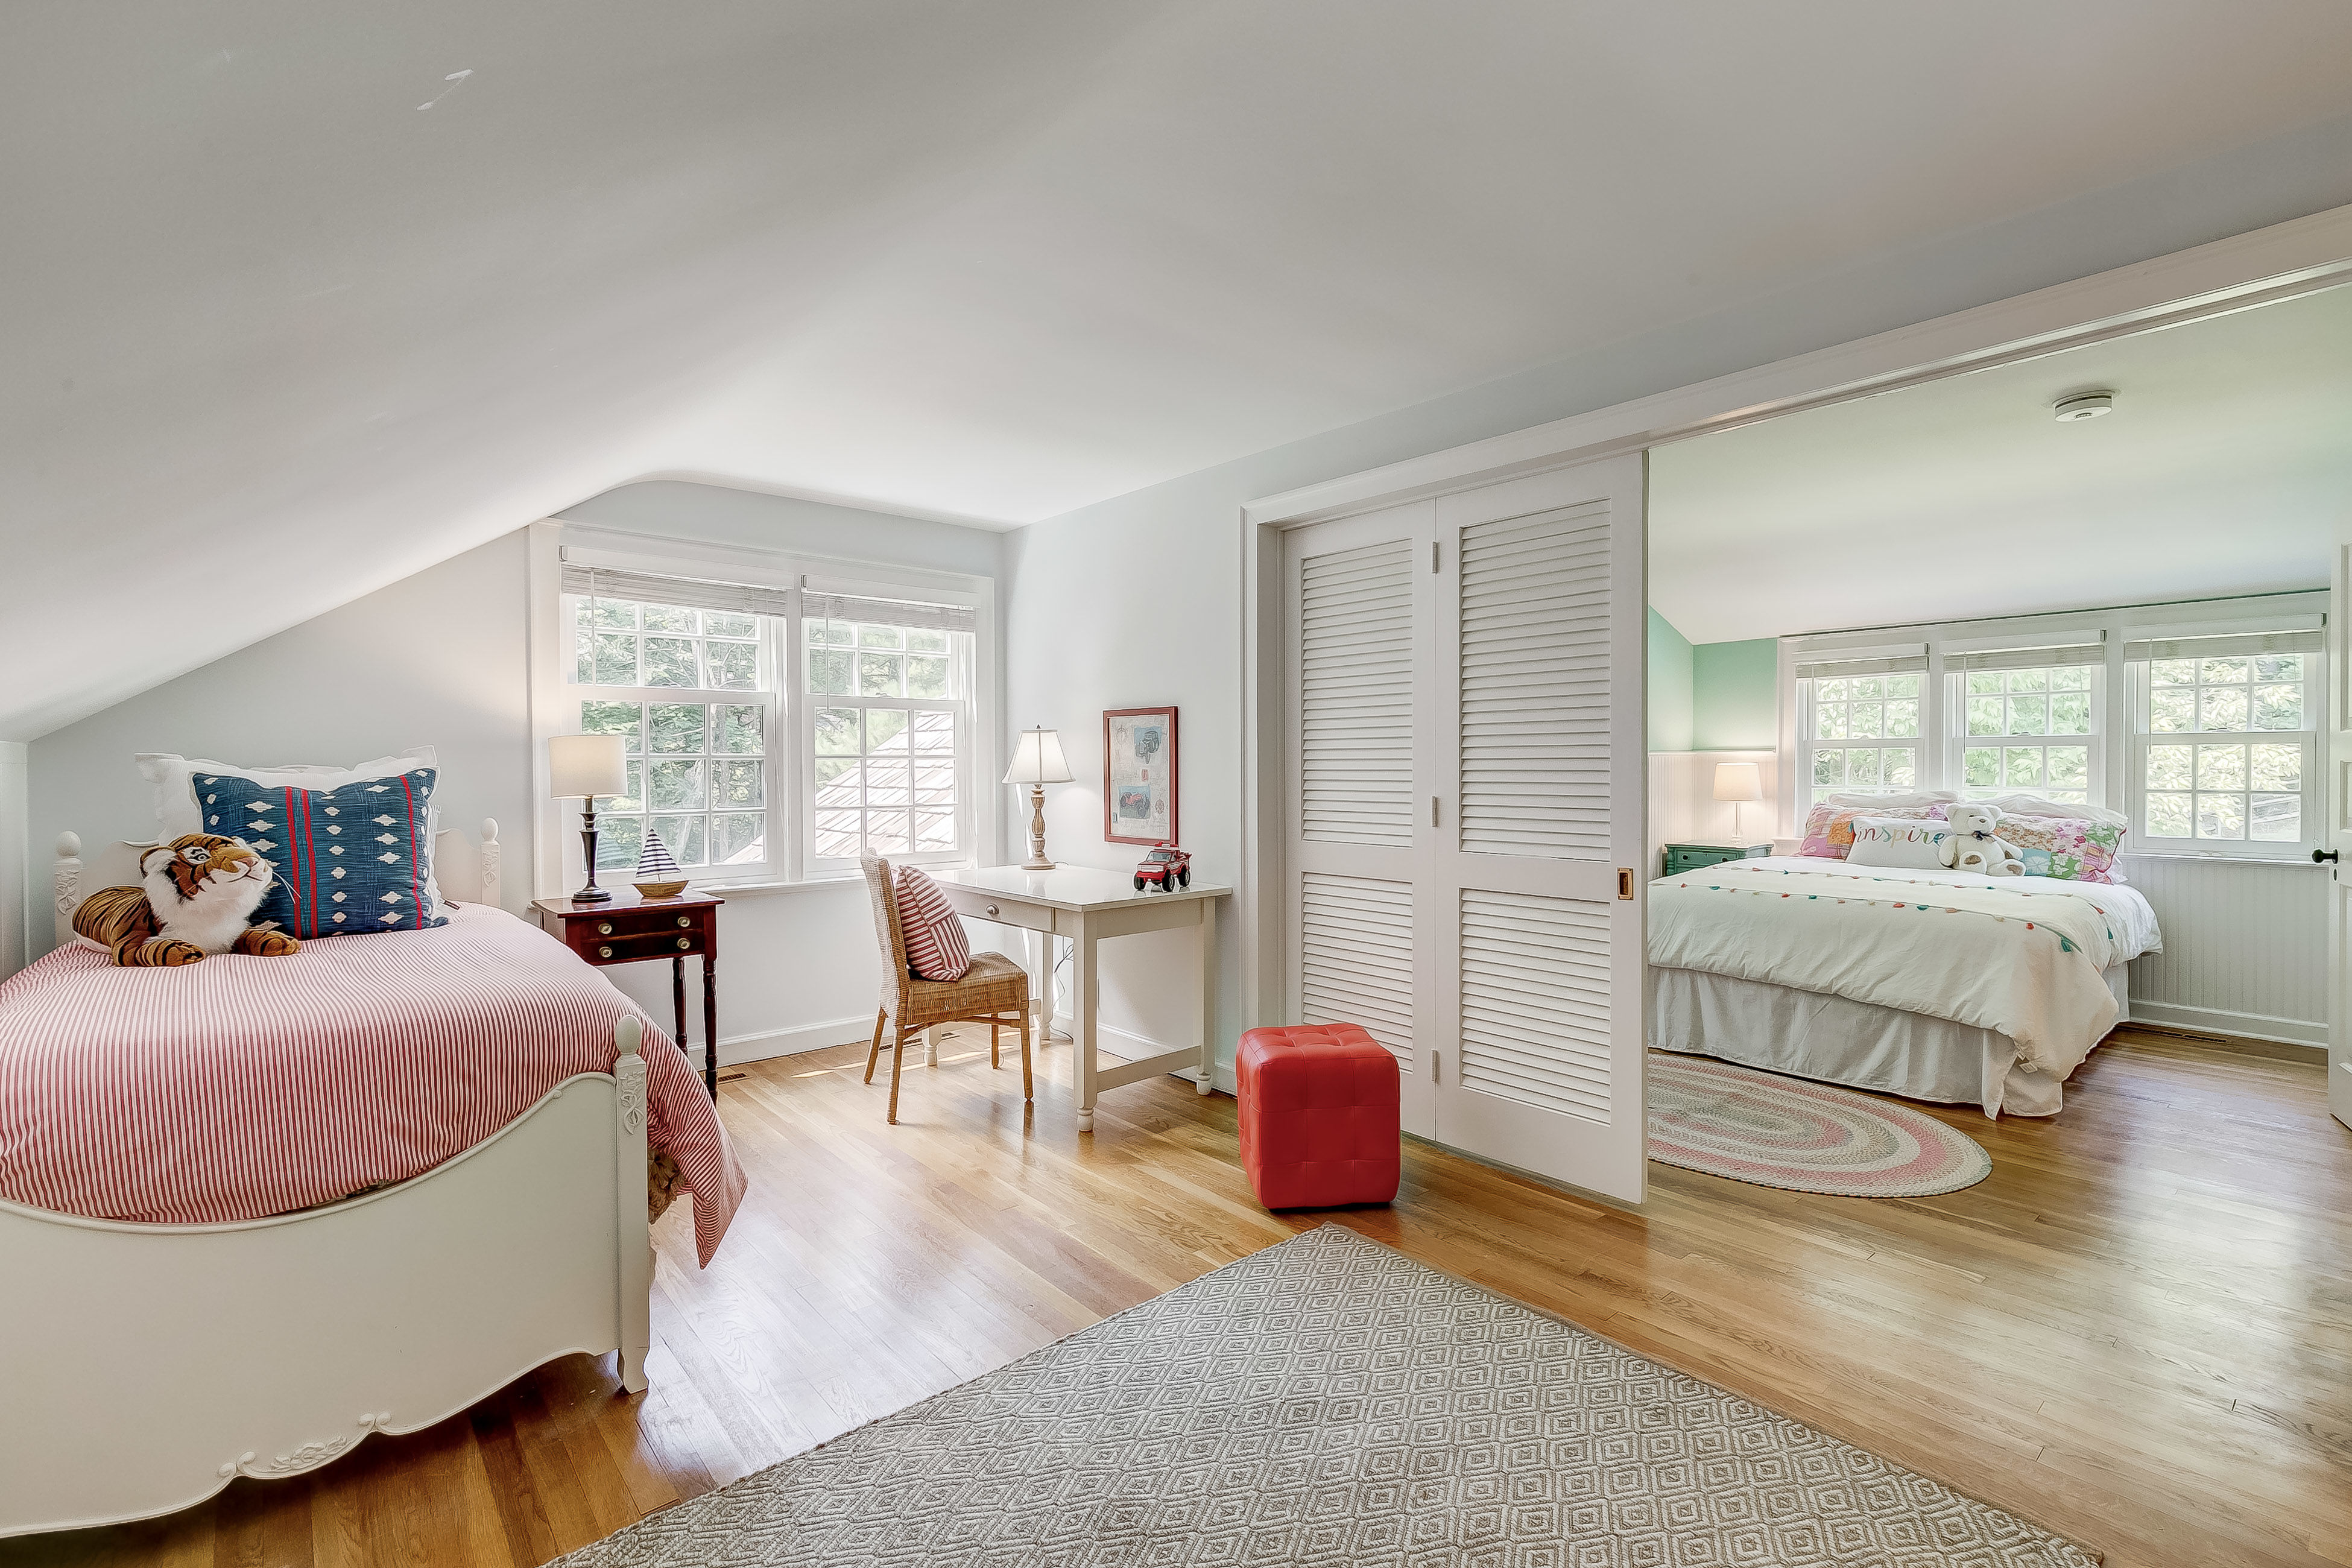 Louvered doors and open to join bedrooms